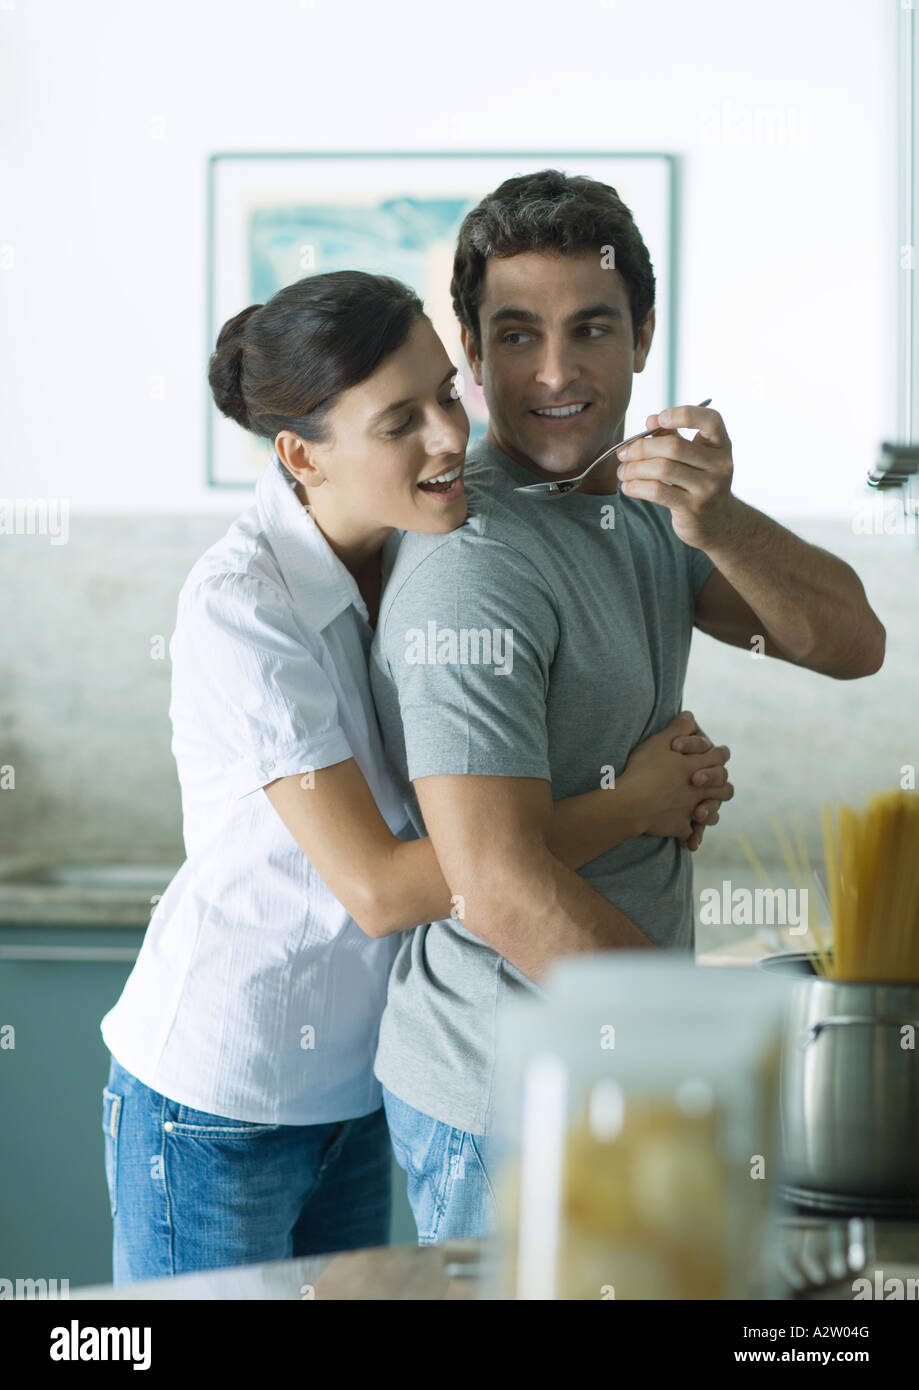 In kitchen, woman holding man around waist as man reaches back with spoon for woman to taste - Stock Image